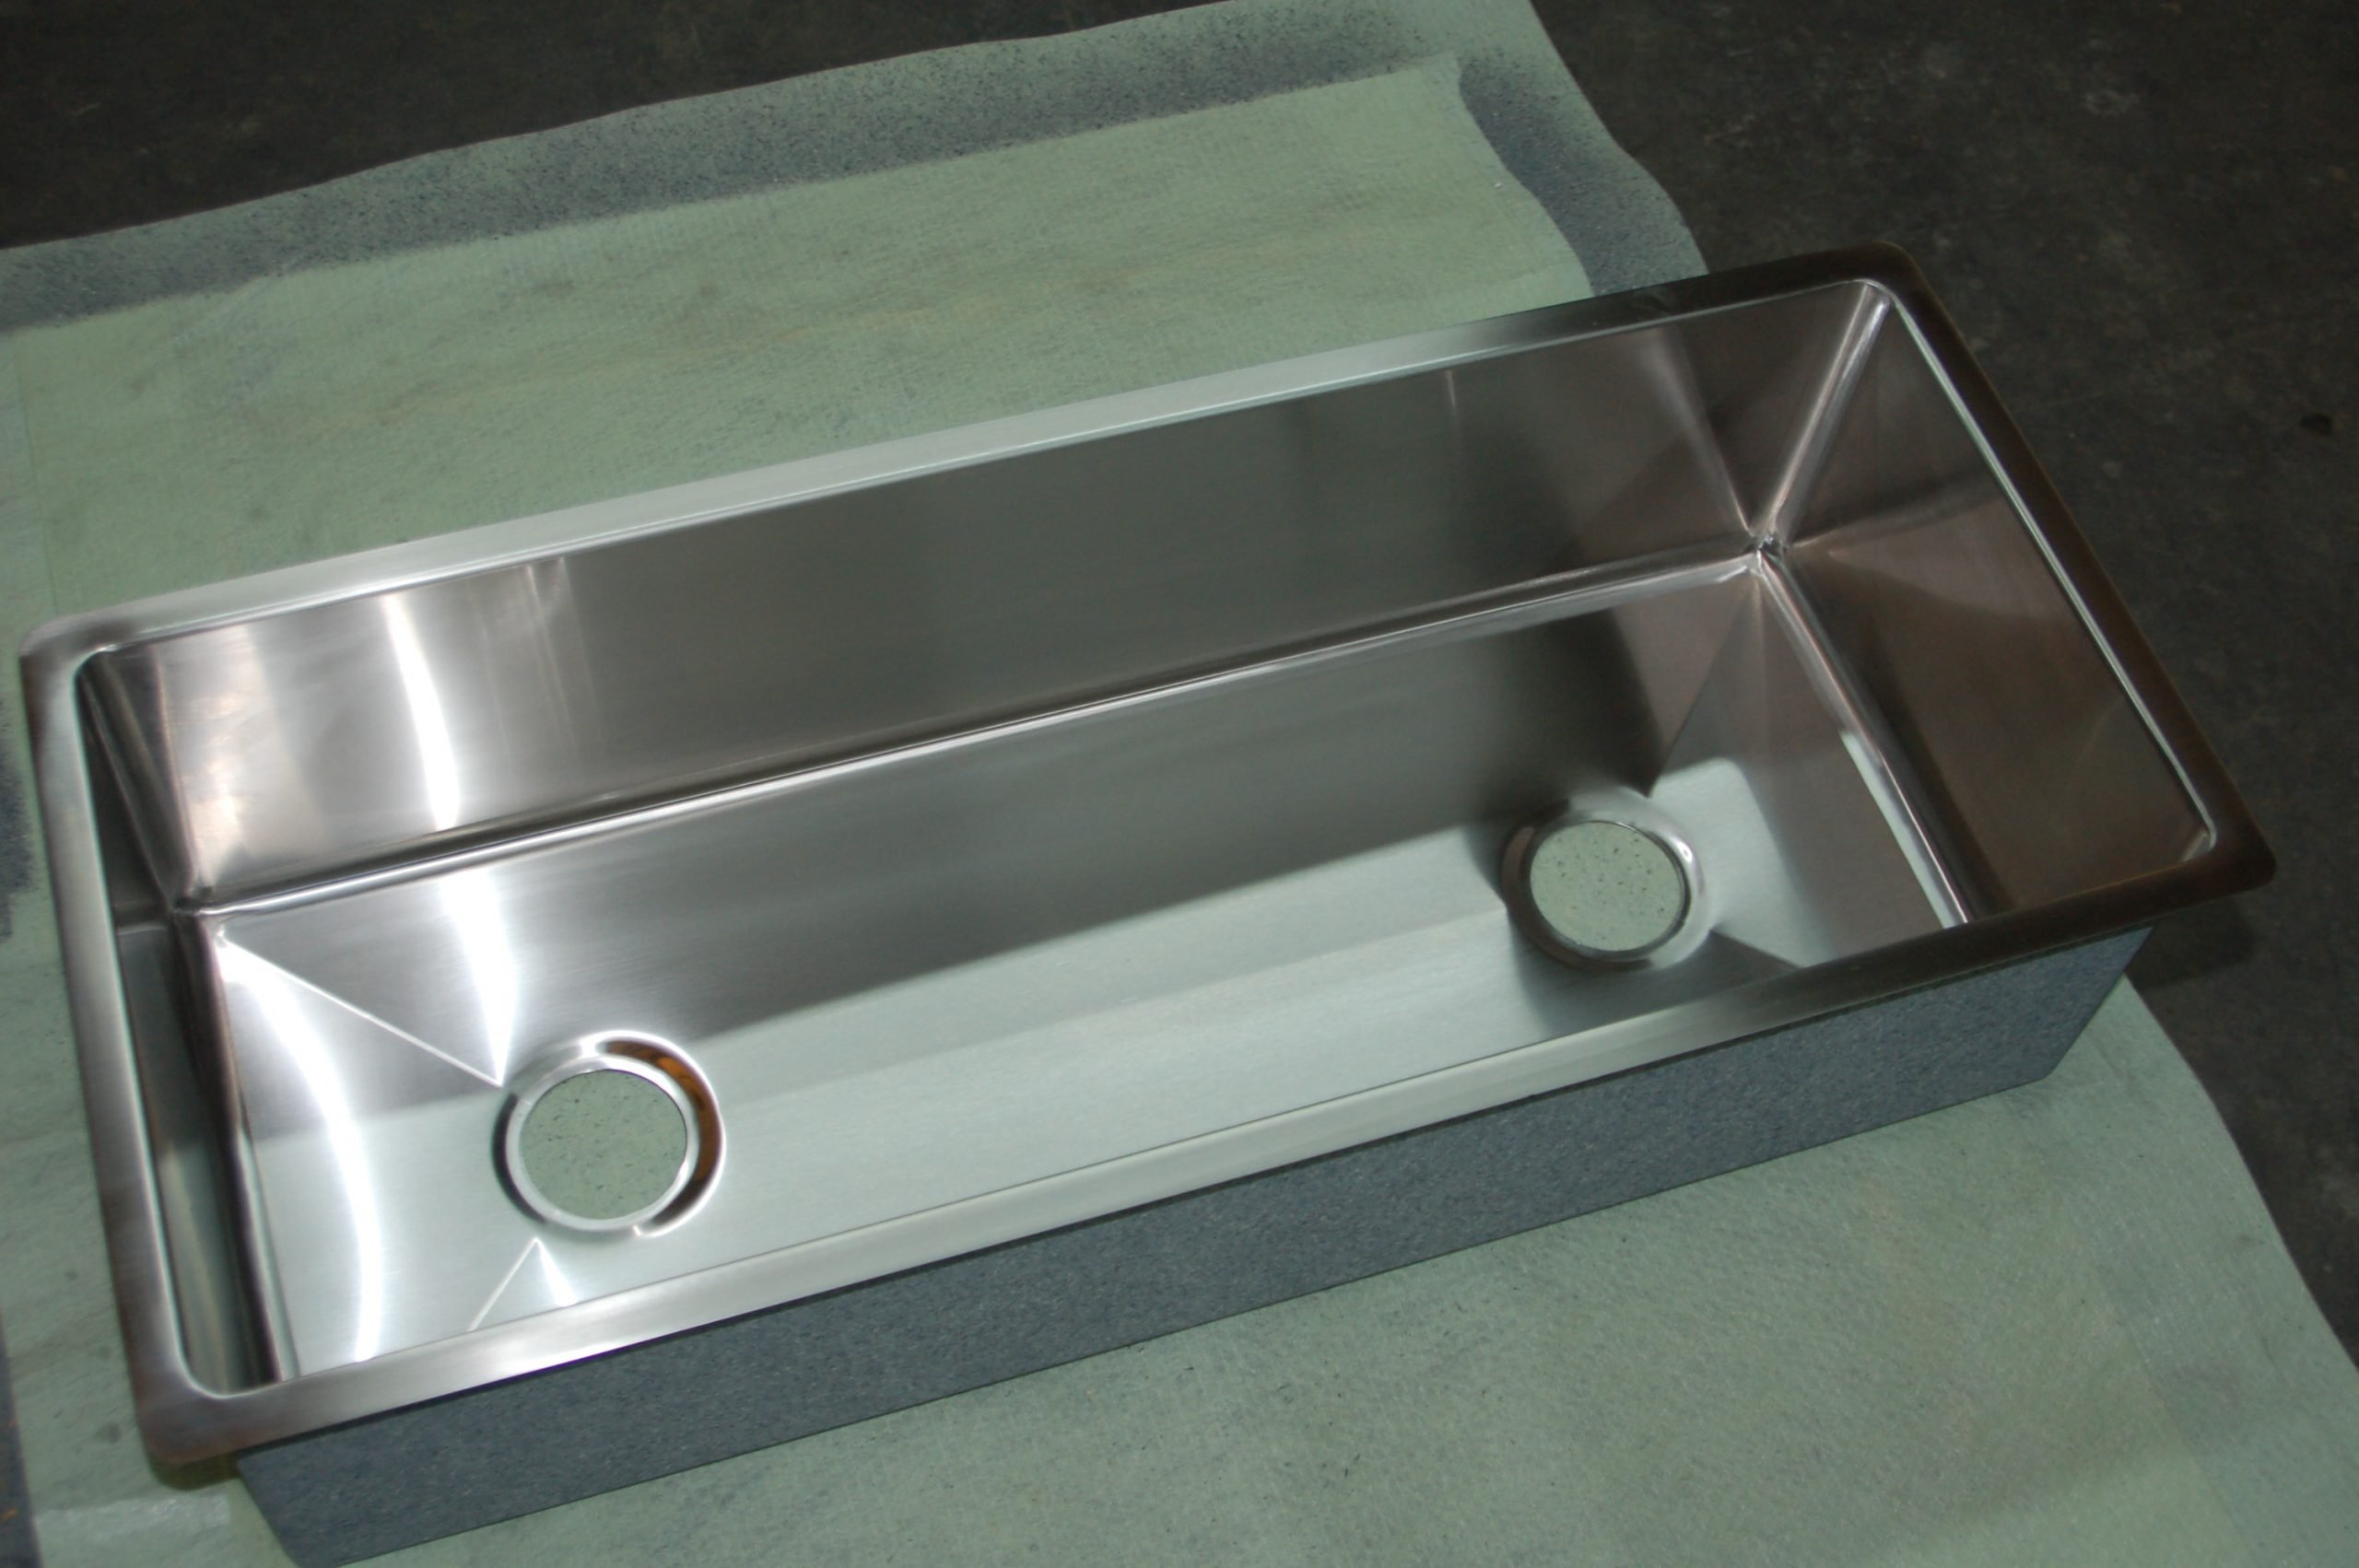 UNDERMOUNT STAINLESS STEEL CUSTOM SINK KINKED TO TWO DRAINS